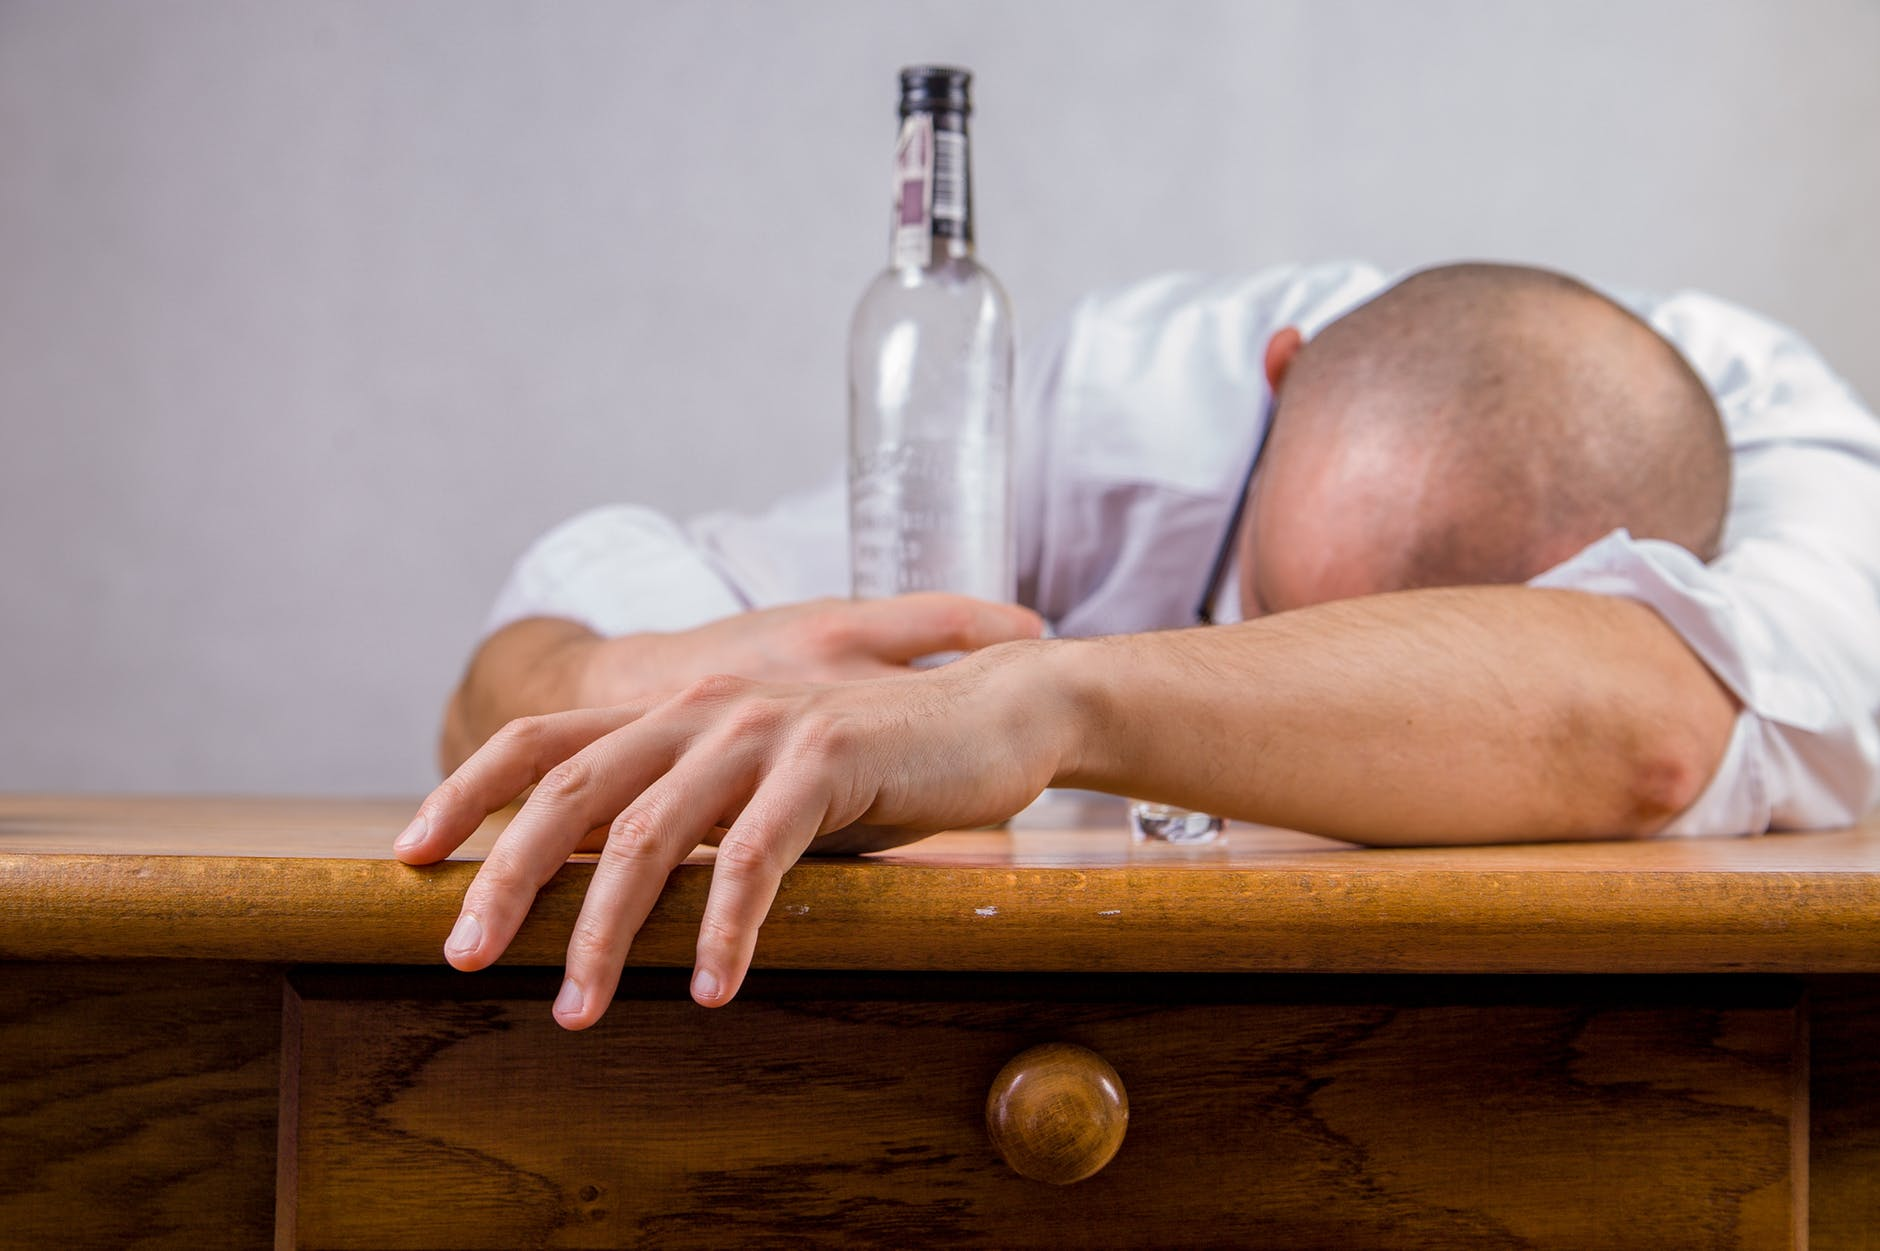 CBD Used to Treat Alcohol Use Disorder: A Systematic Review